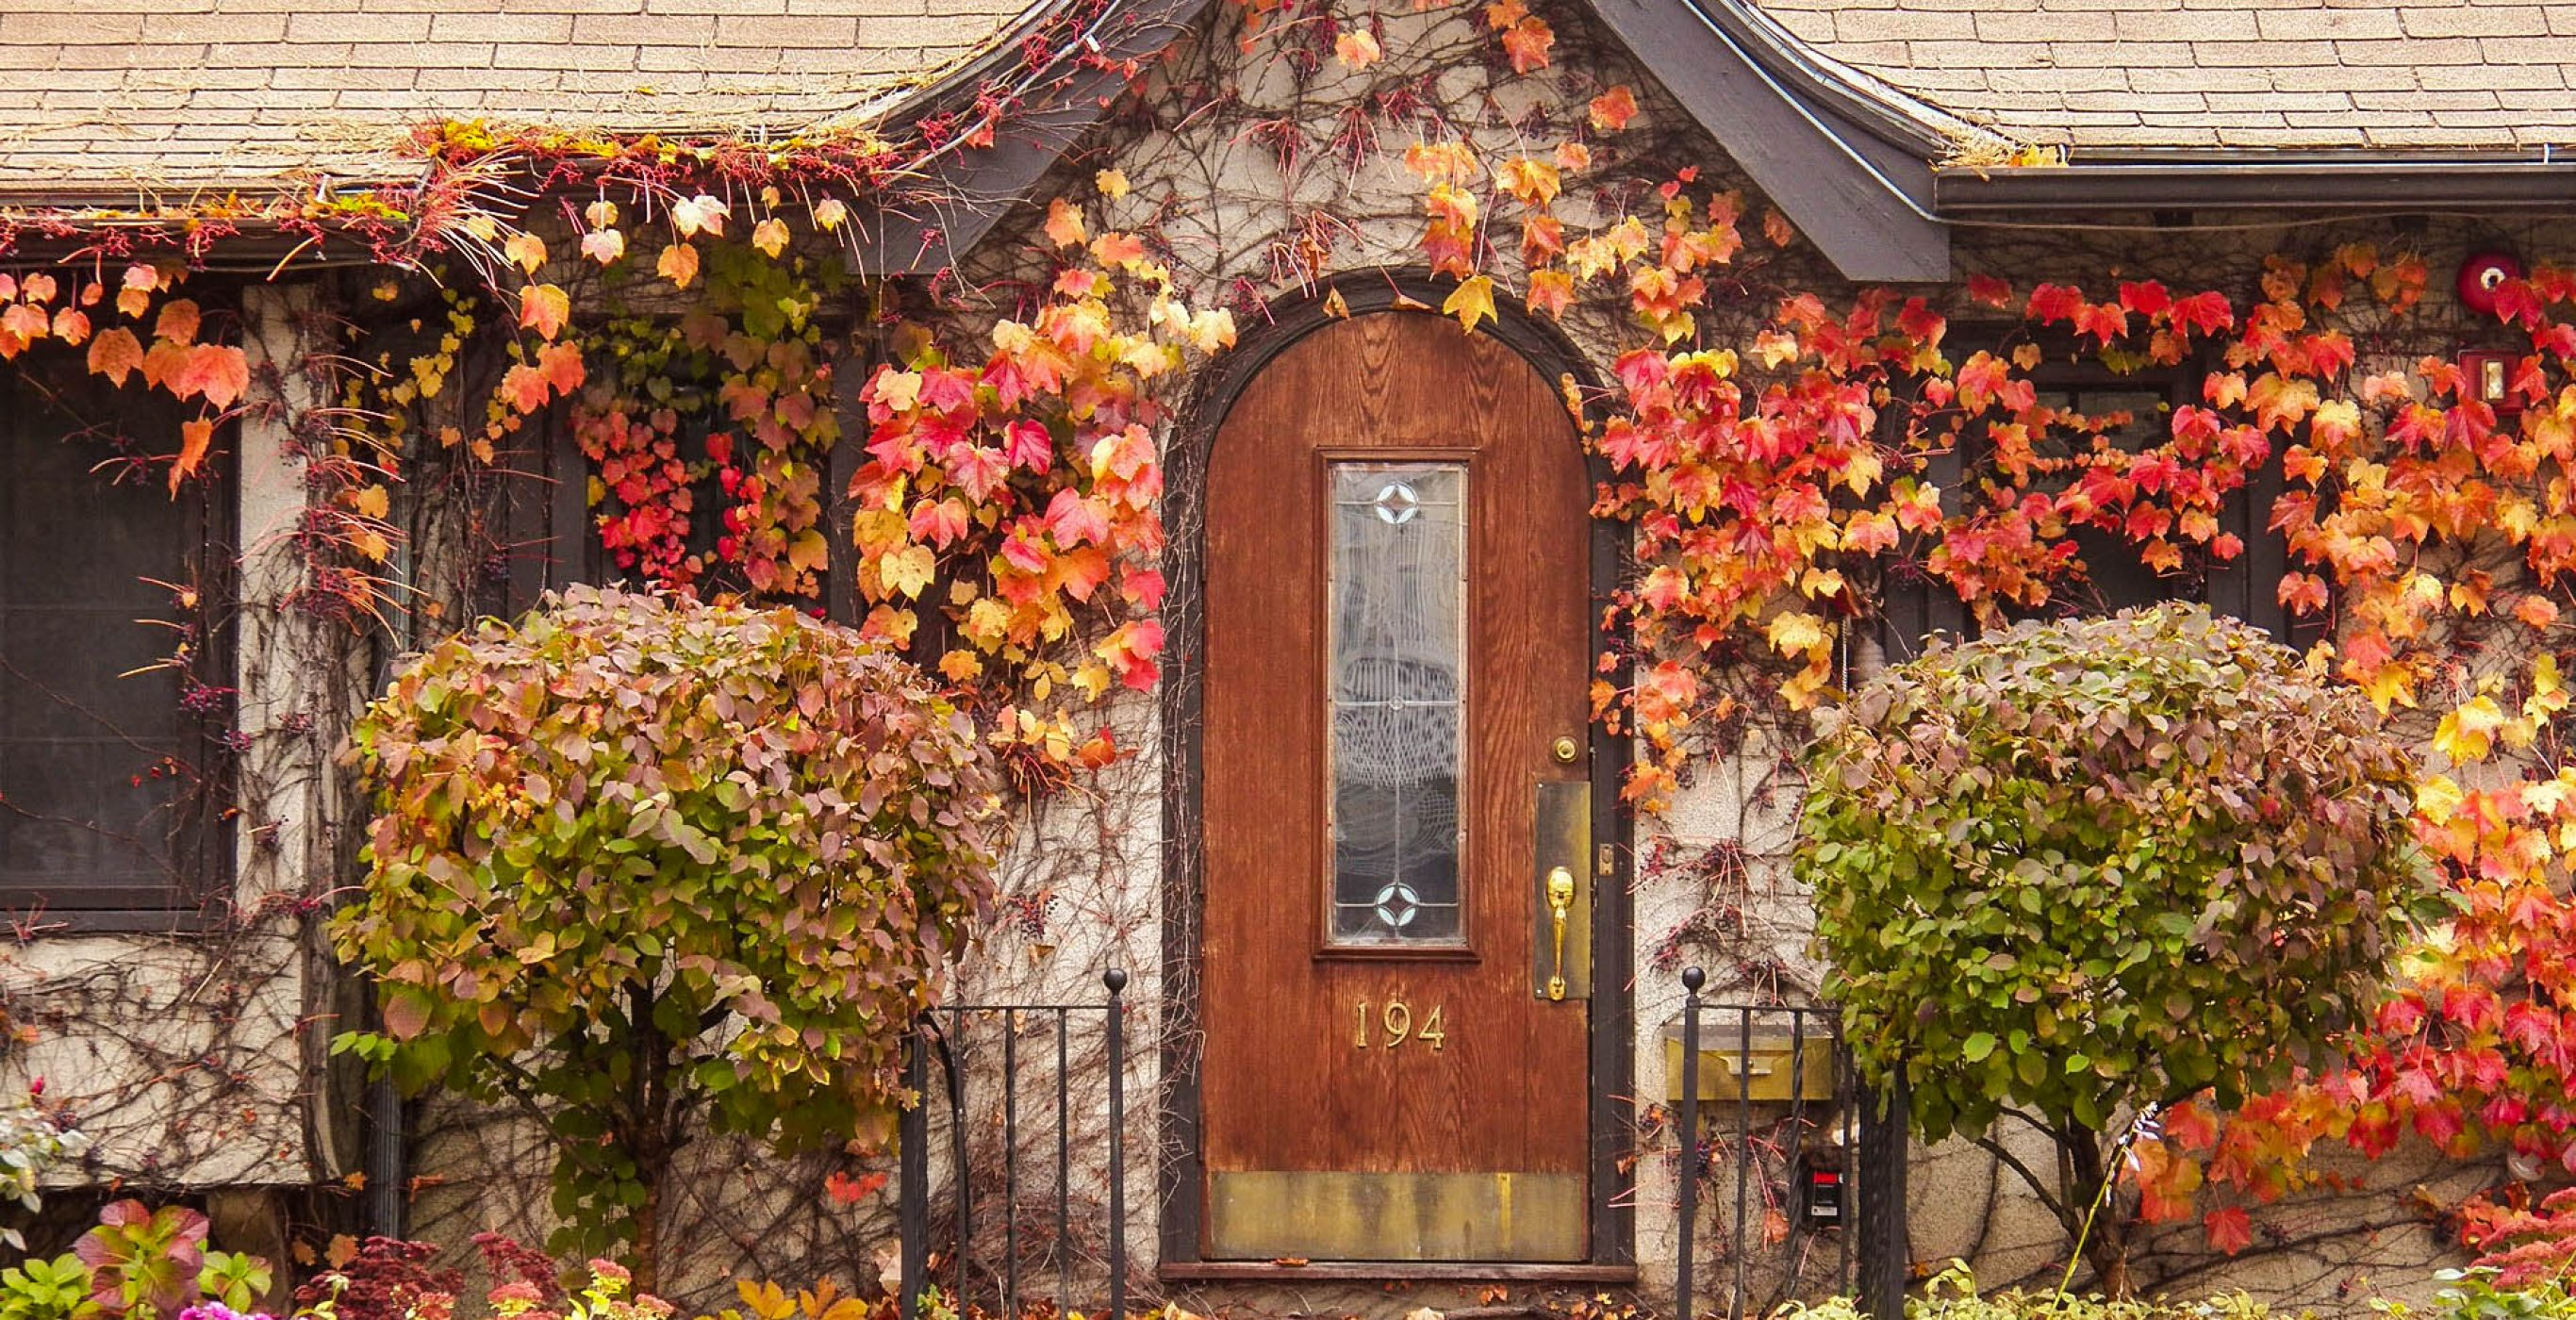 A door covered with flowering vines and other plants, used as the featured image for the article